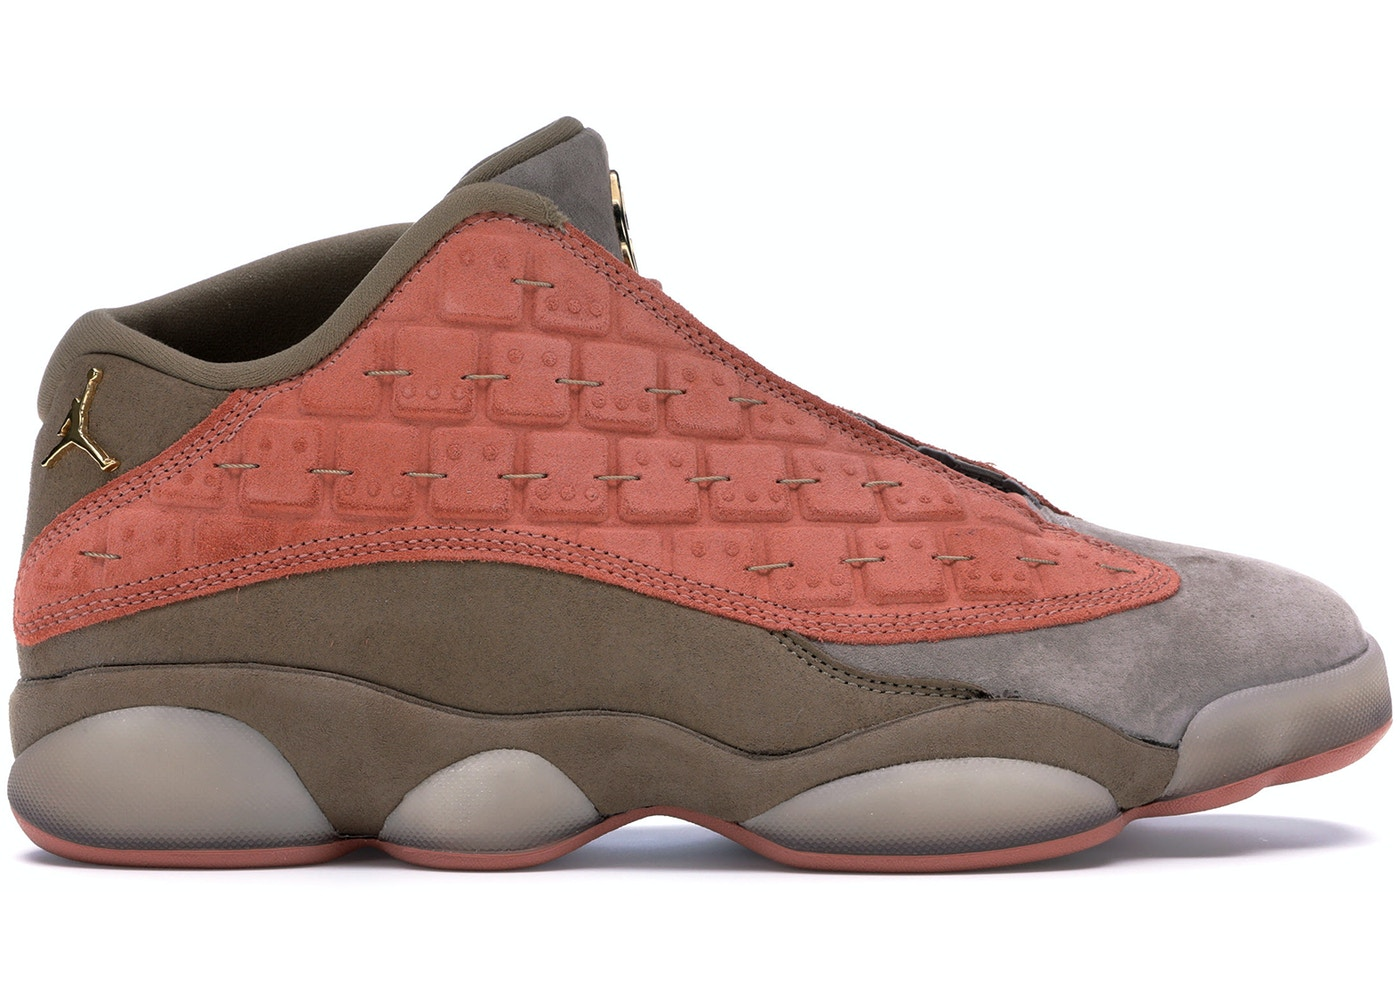 cheap for discount d3f52 0021f Buy Air Jordan 13 Shoes & Deadstock Sneakers